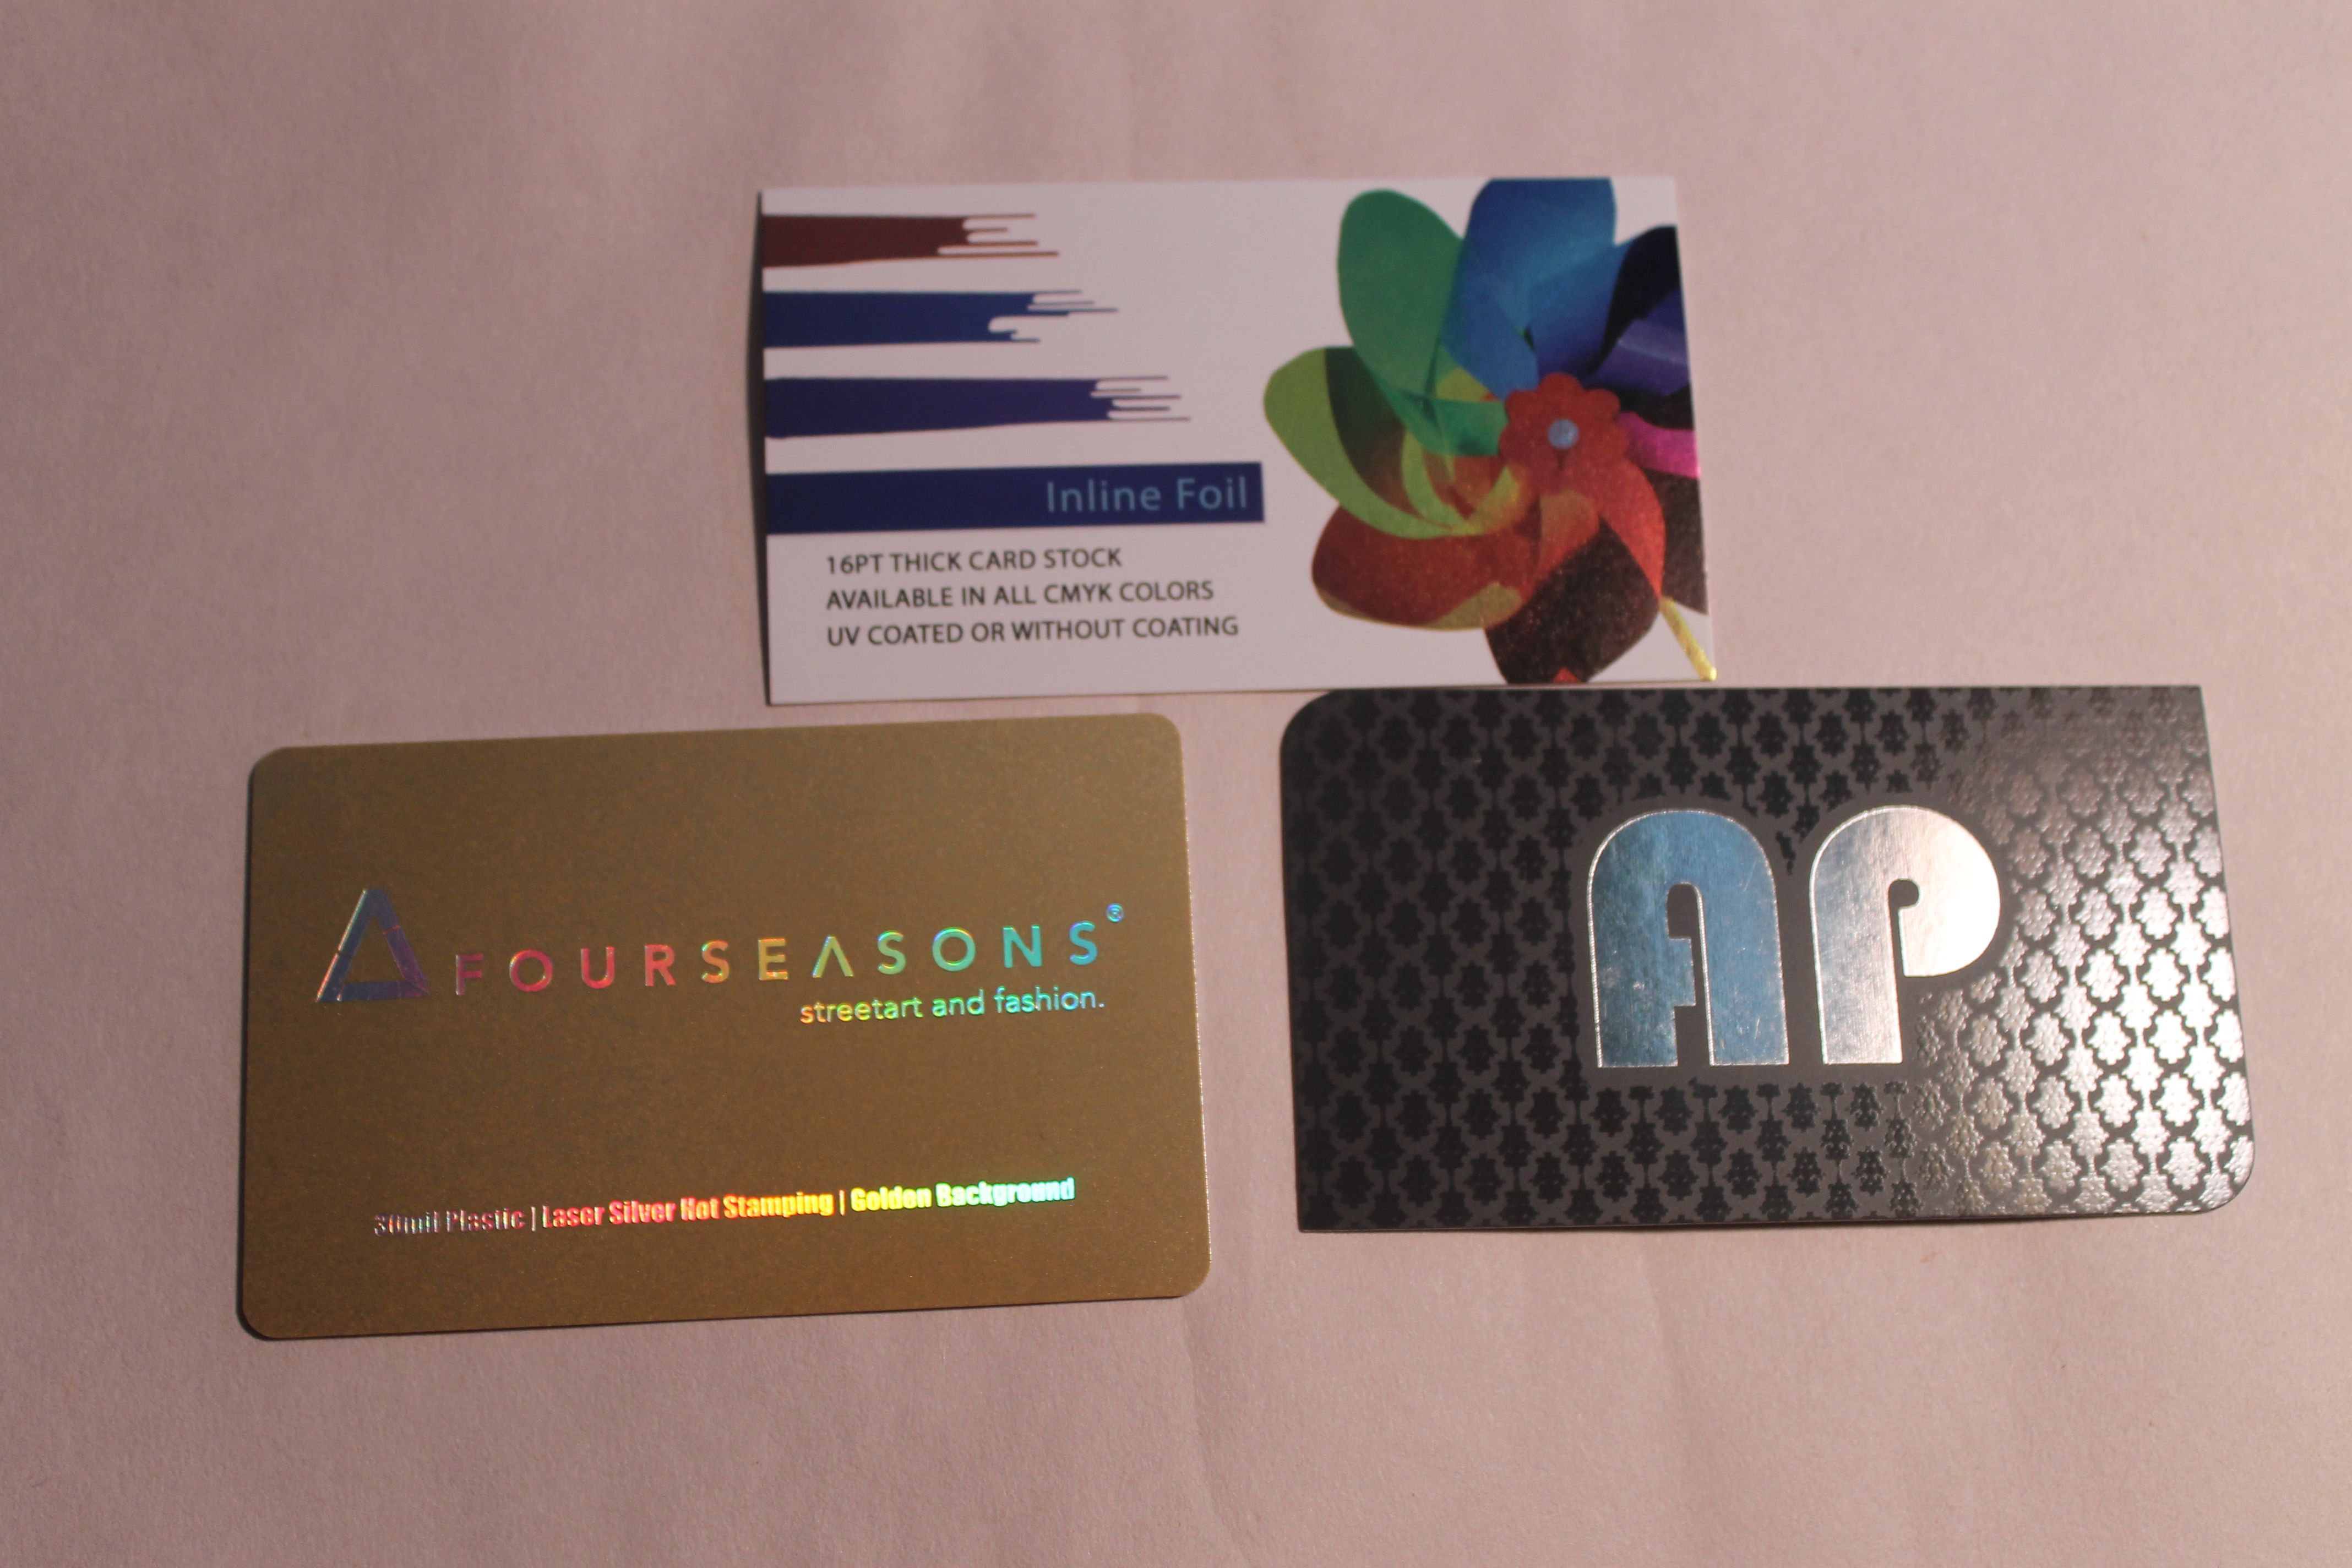 3 Different Paper Stocks With Foil Stamping 1 16 Pt Thick Card With Uv Coating 2 30 Mil Plastic Las Foil Business Cards Custom Business Cards Foil Stamping